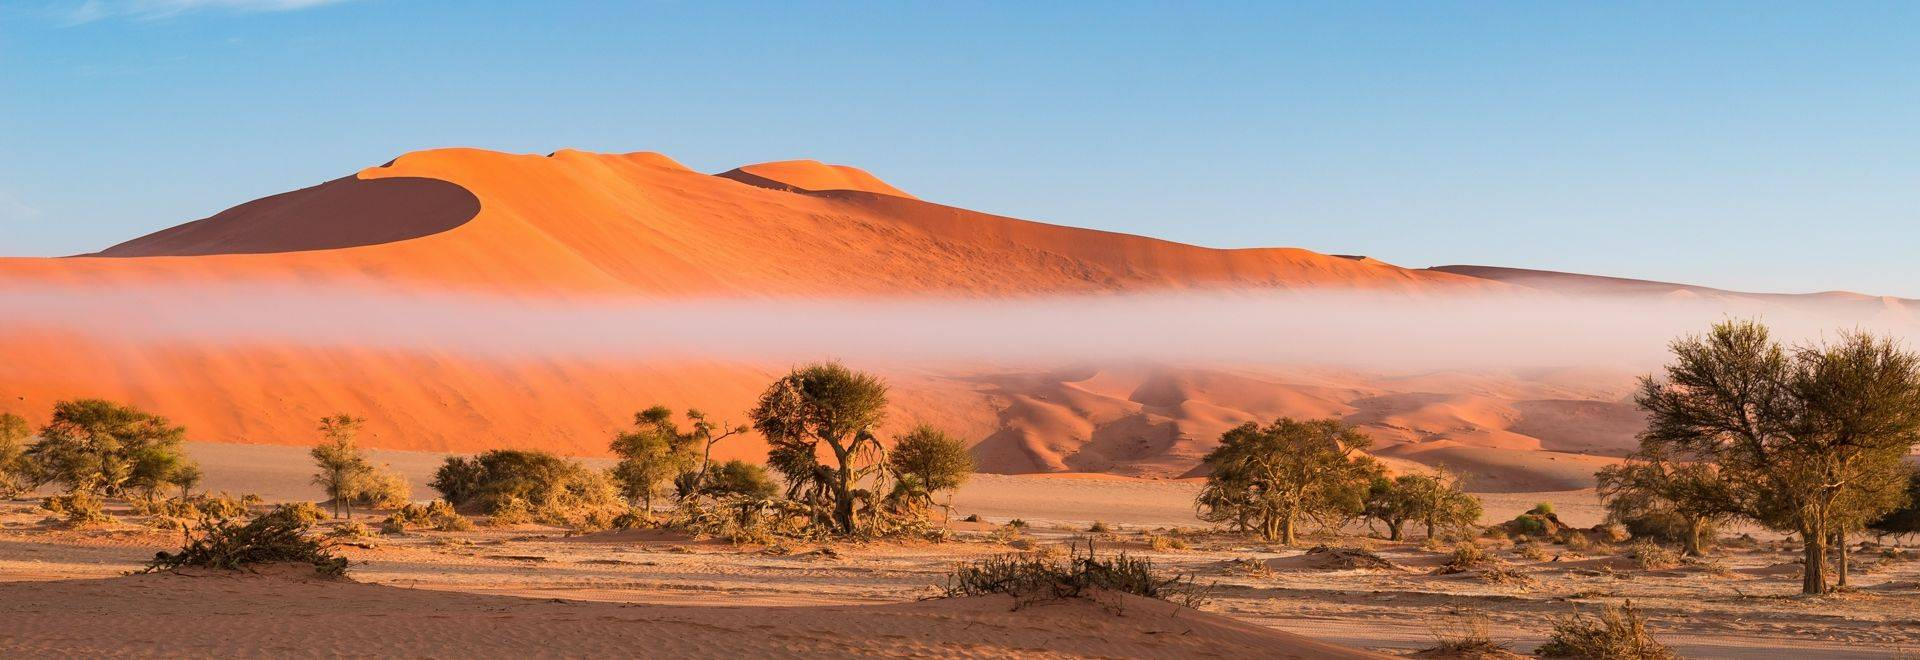 Sand dunes in the Namib desert, roadtrip in the wonderful Namib Naukluft National Park, travel destination in Namibia, Afric…